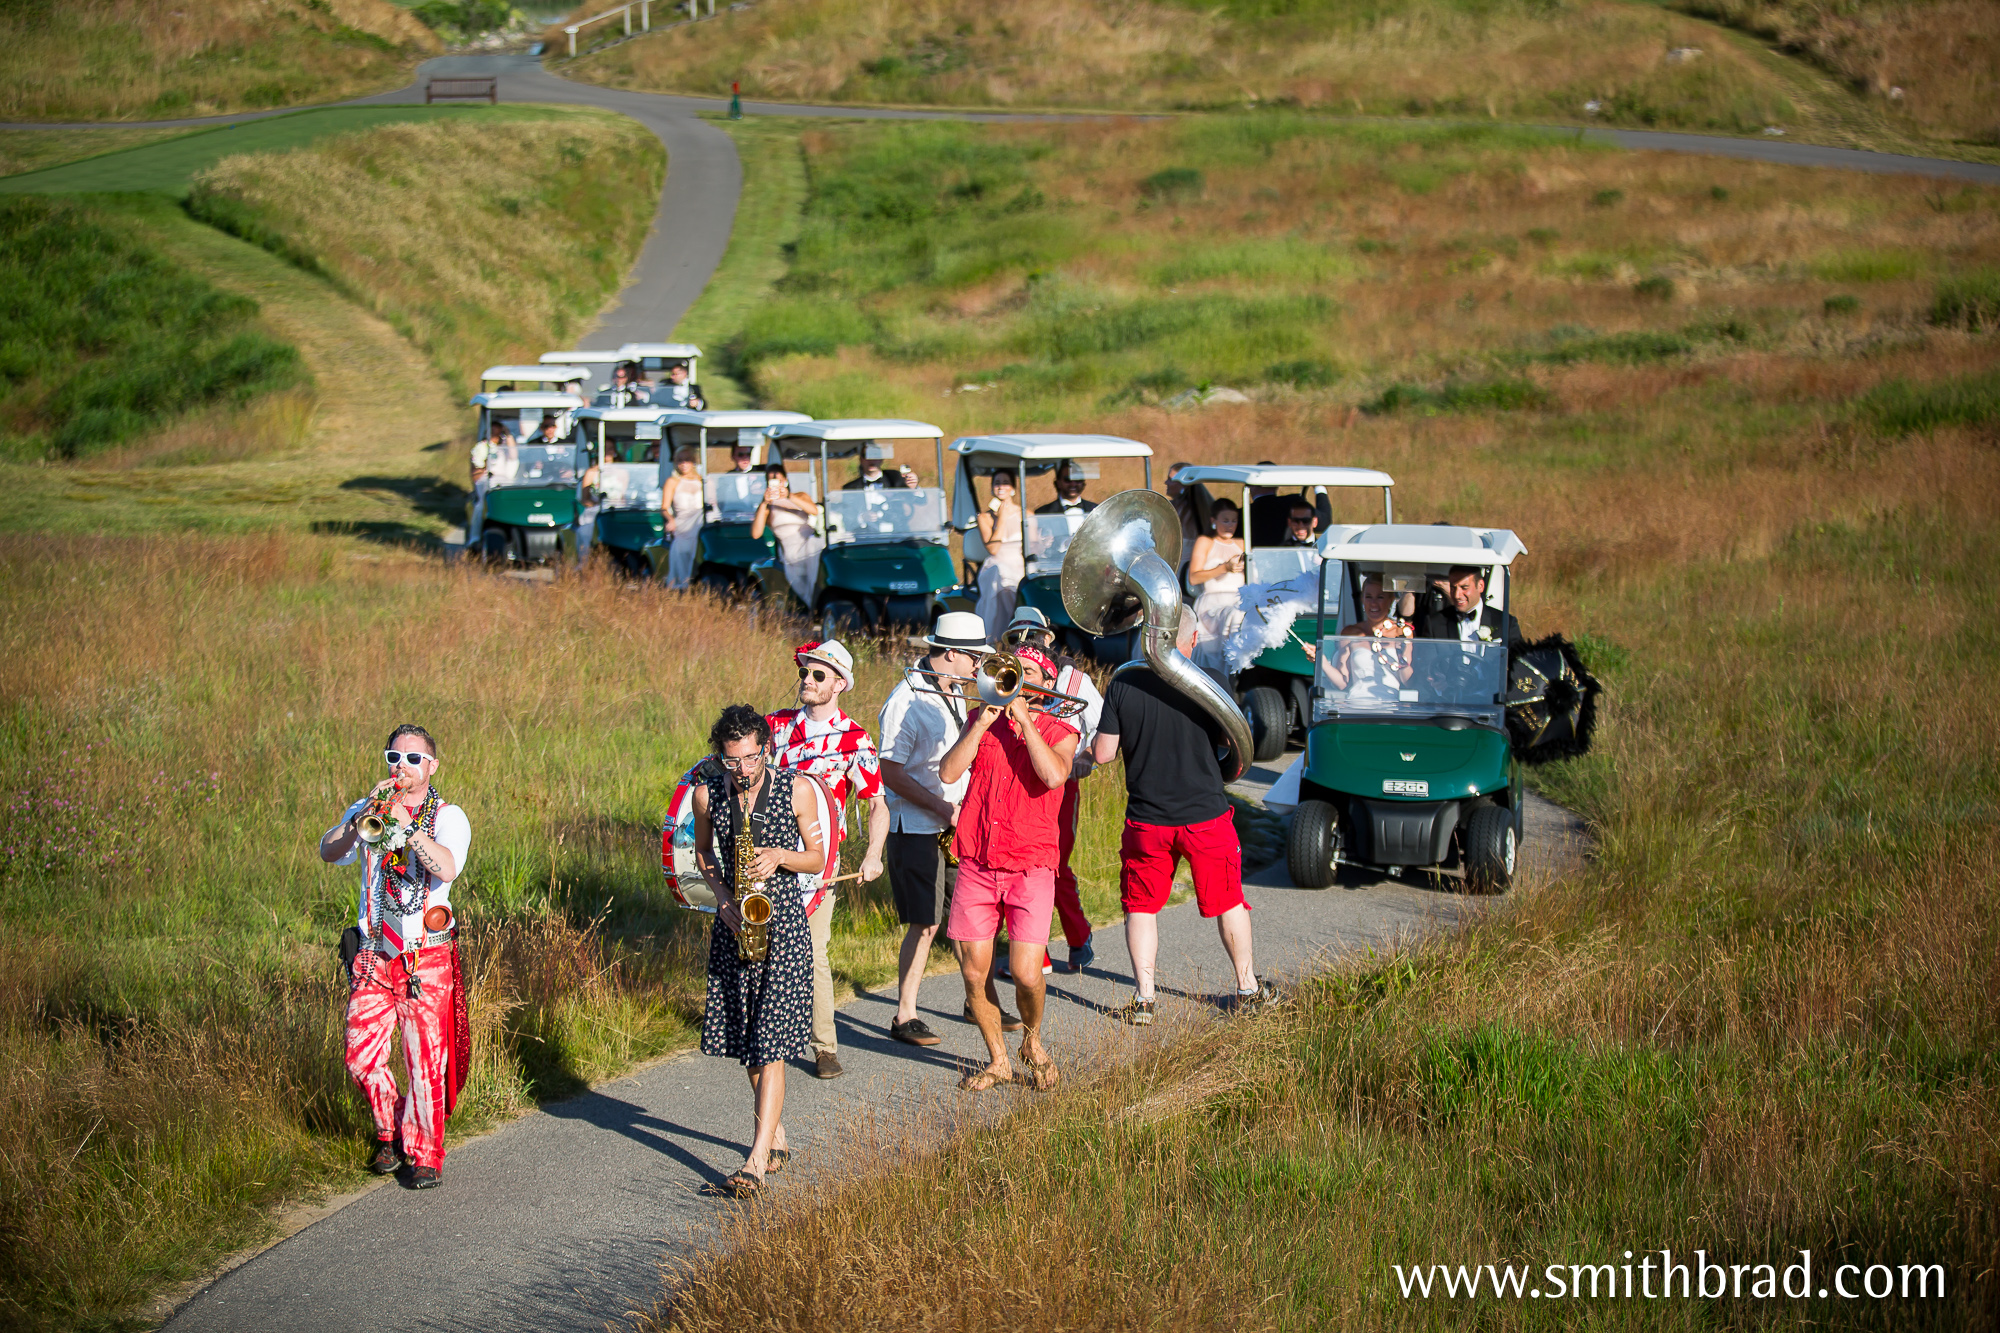 misquamicut_club_wedding_golf_watch_hill_Westerly_Rhode_Island_photography_photographer-35